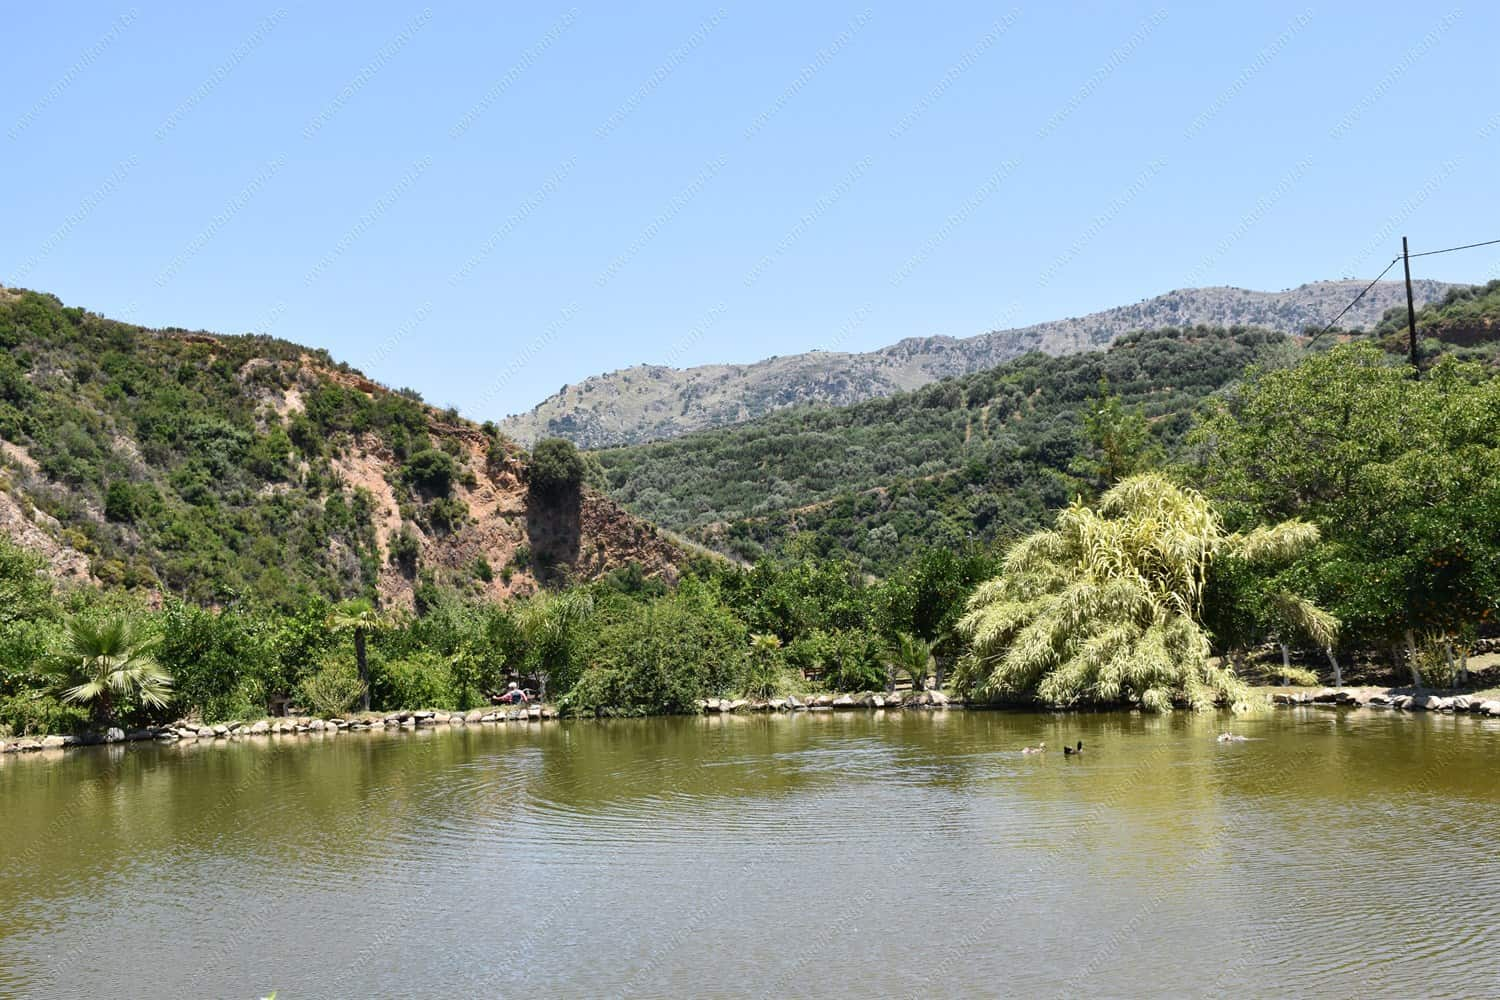 The Botanical Park and Gardens of Crete